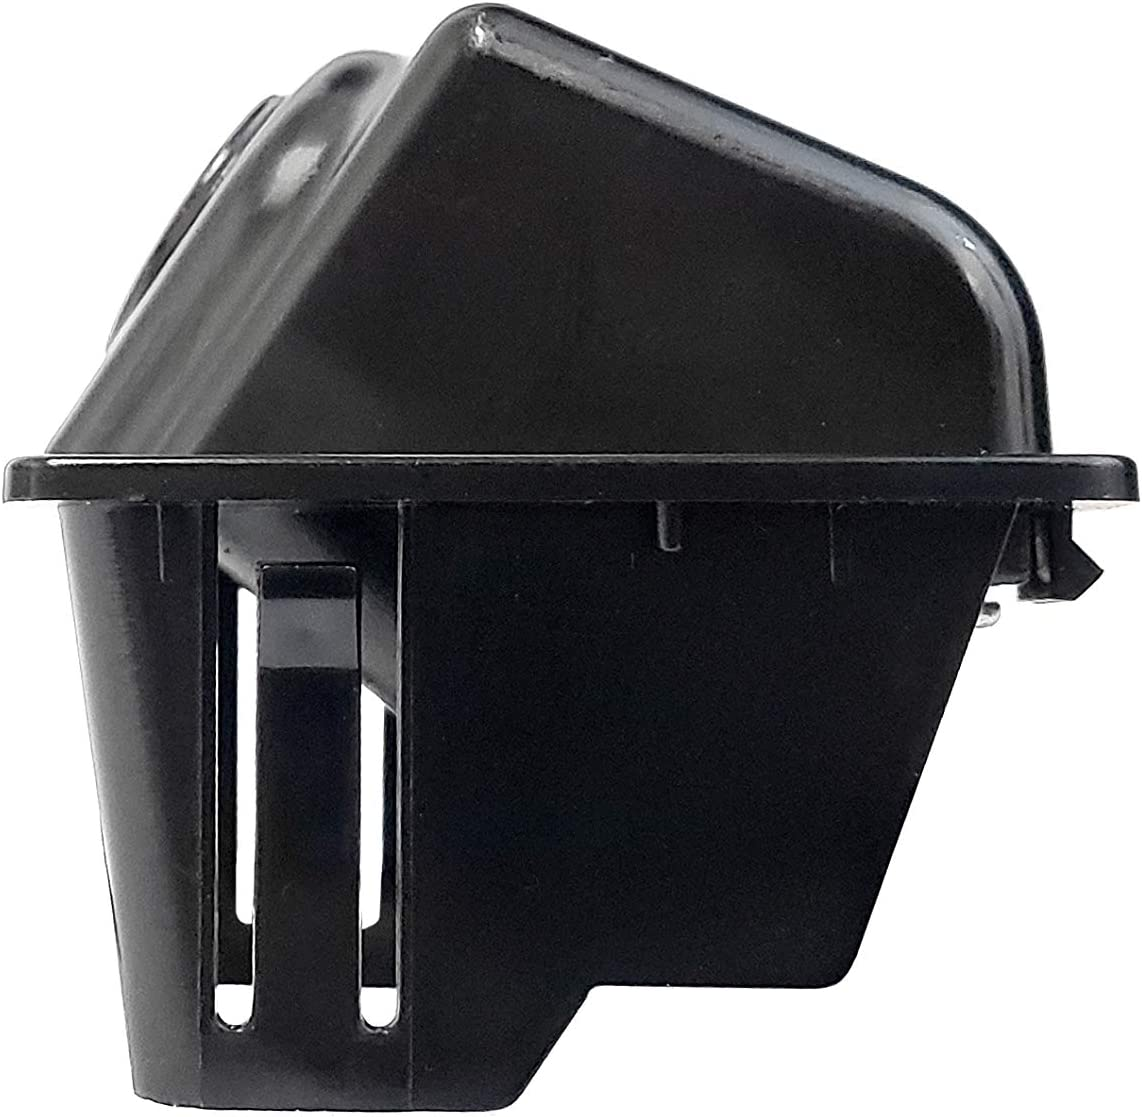 2010-2013 2012-2013 Cruze 2013-2016 Master Tailgaters Replacement for GM Equinox Backup Camera OE Part # 95407397 Terrain